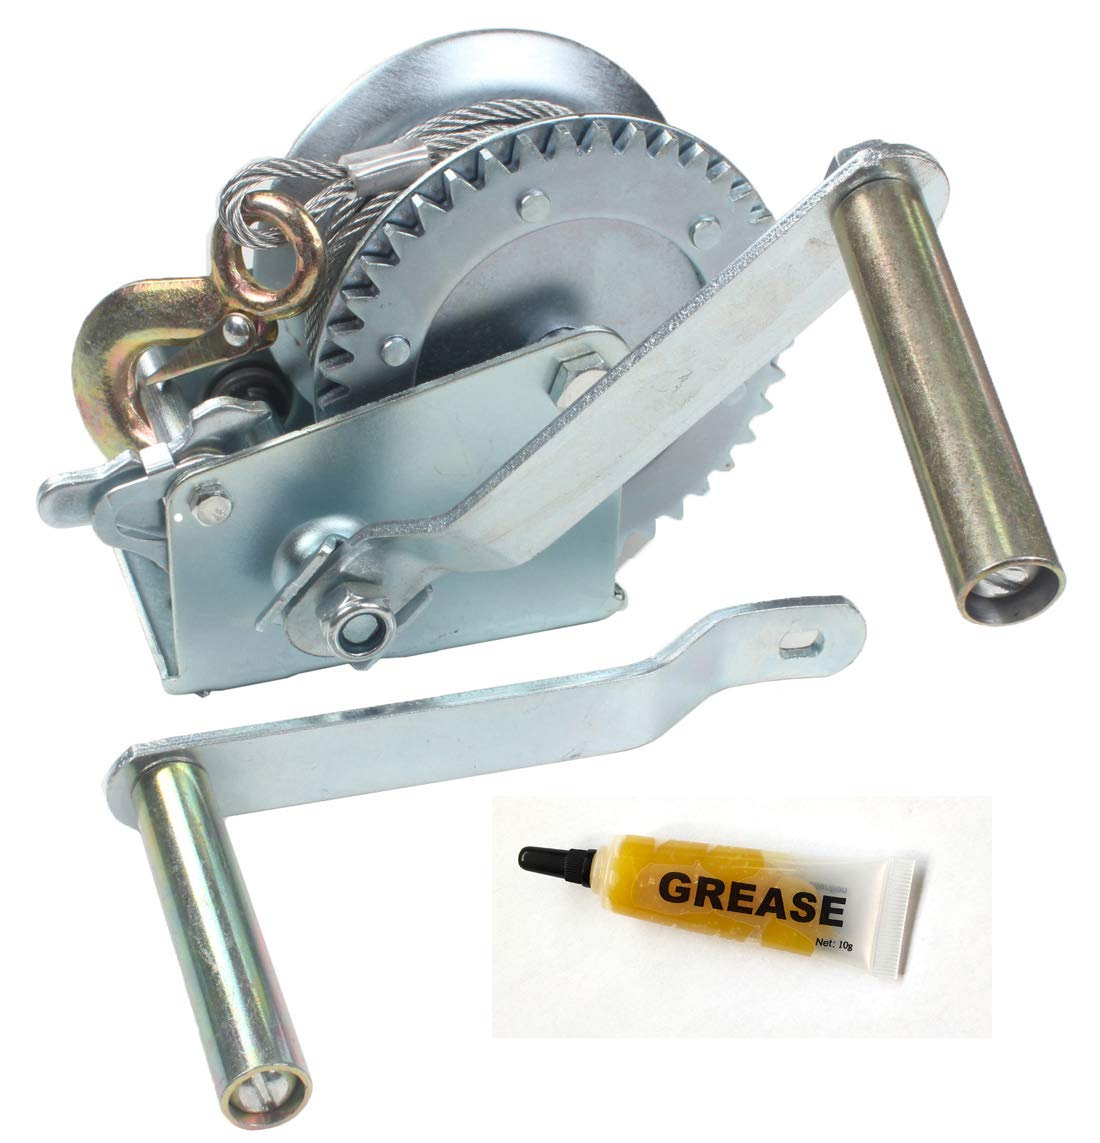 AC-DK 1600 lb - 3500 lb Hand Gear Winch Come with Two Crank Handles! - Manual Operating with Strap & Cable for Boats and Trailers(1600 lb with Cable). by AC-DK (Image #1)